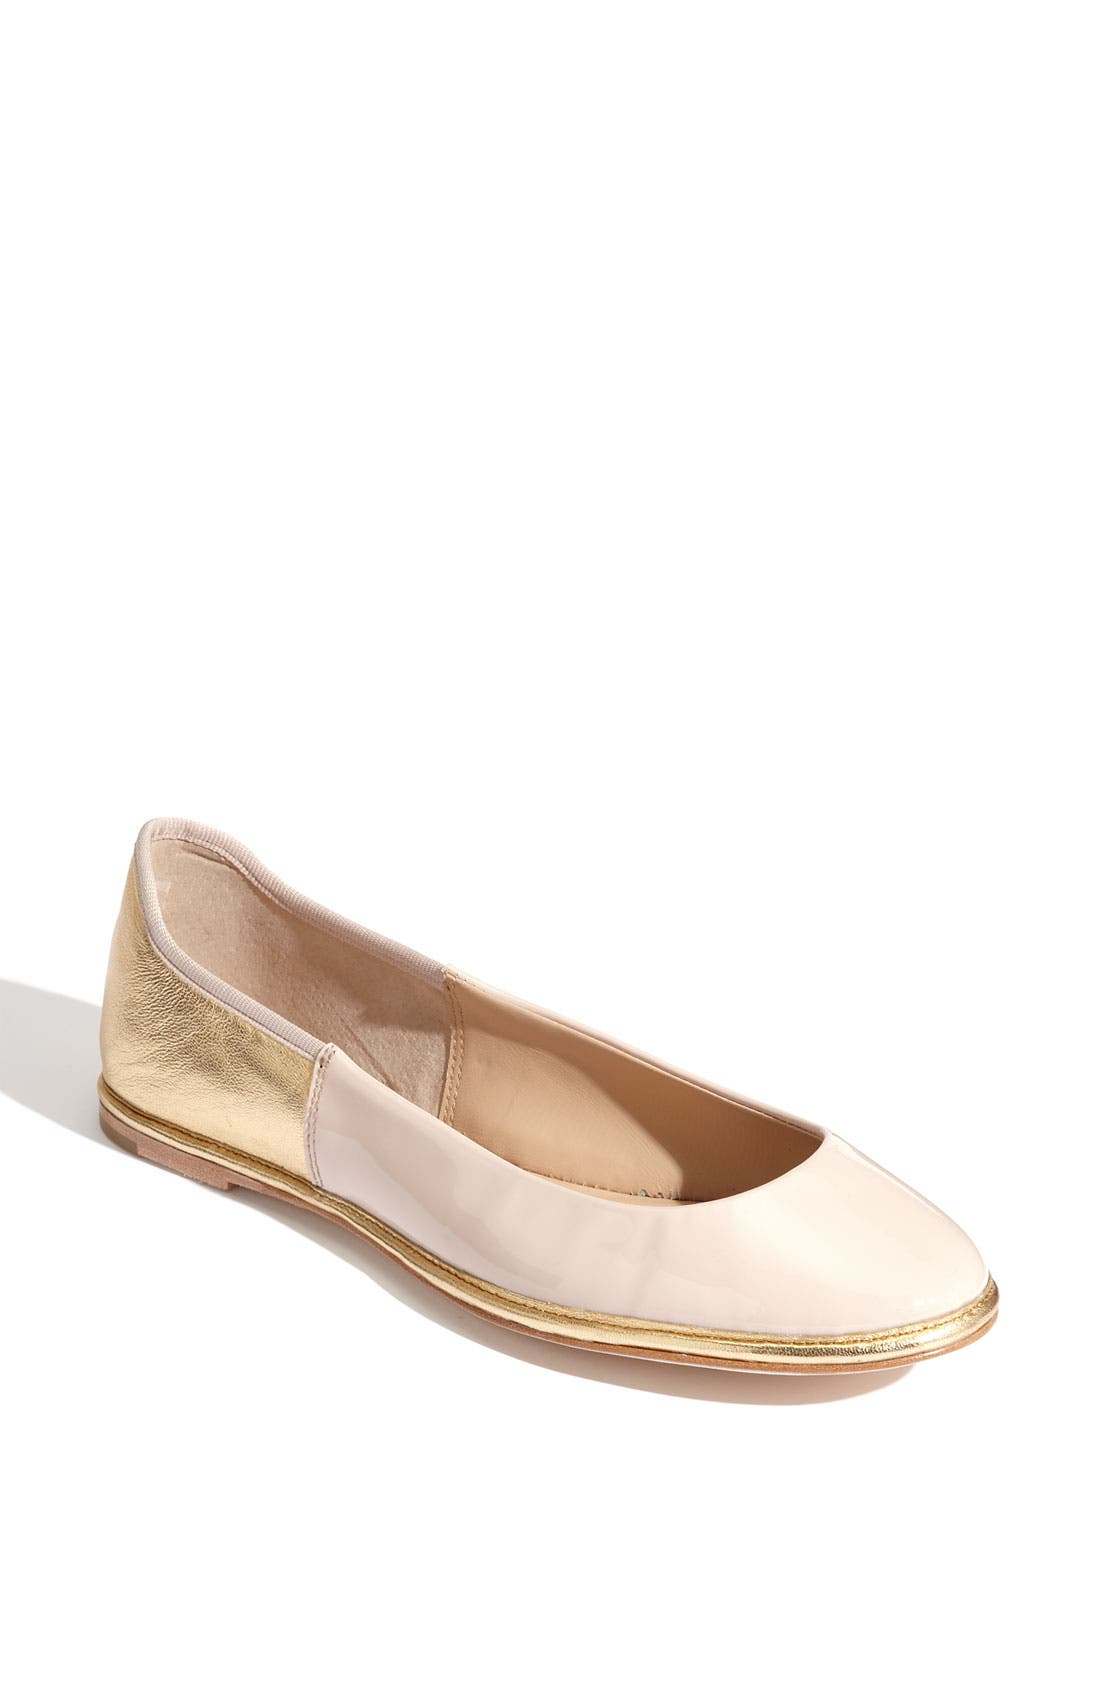 Alternate Image 1 Selected - Diane von Furstenberg 'Botswana' Two Tone Flat